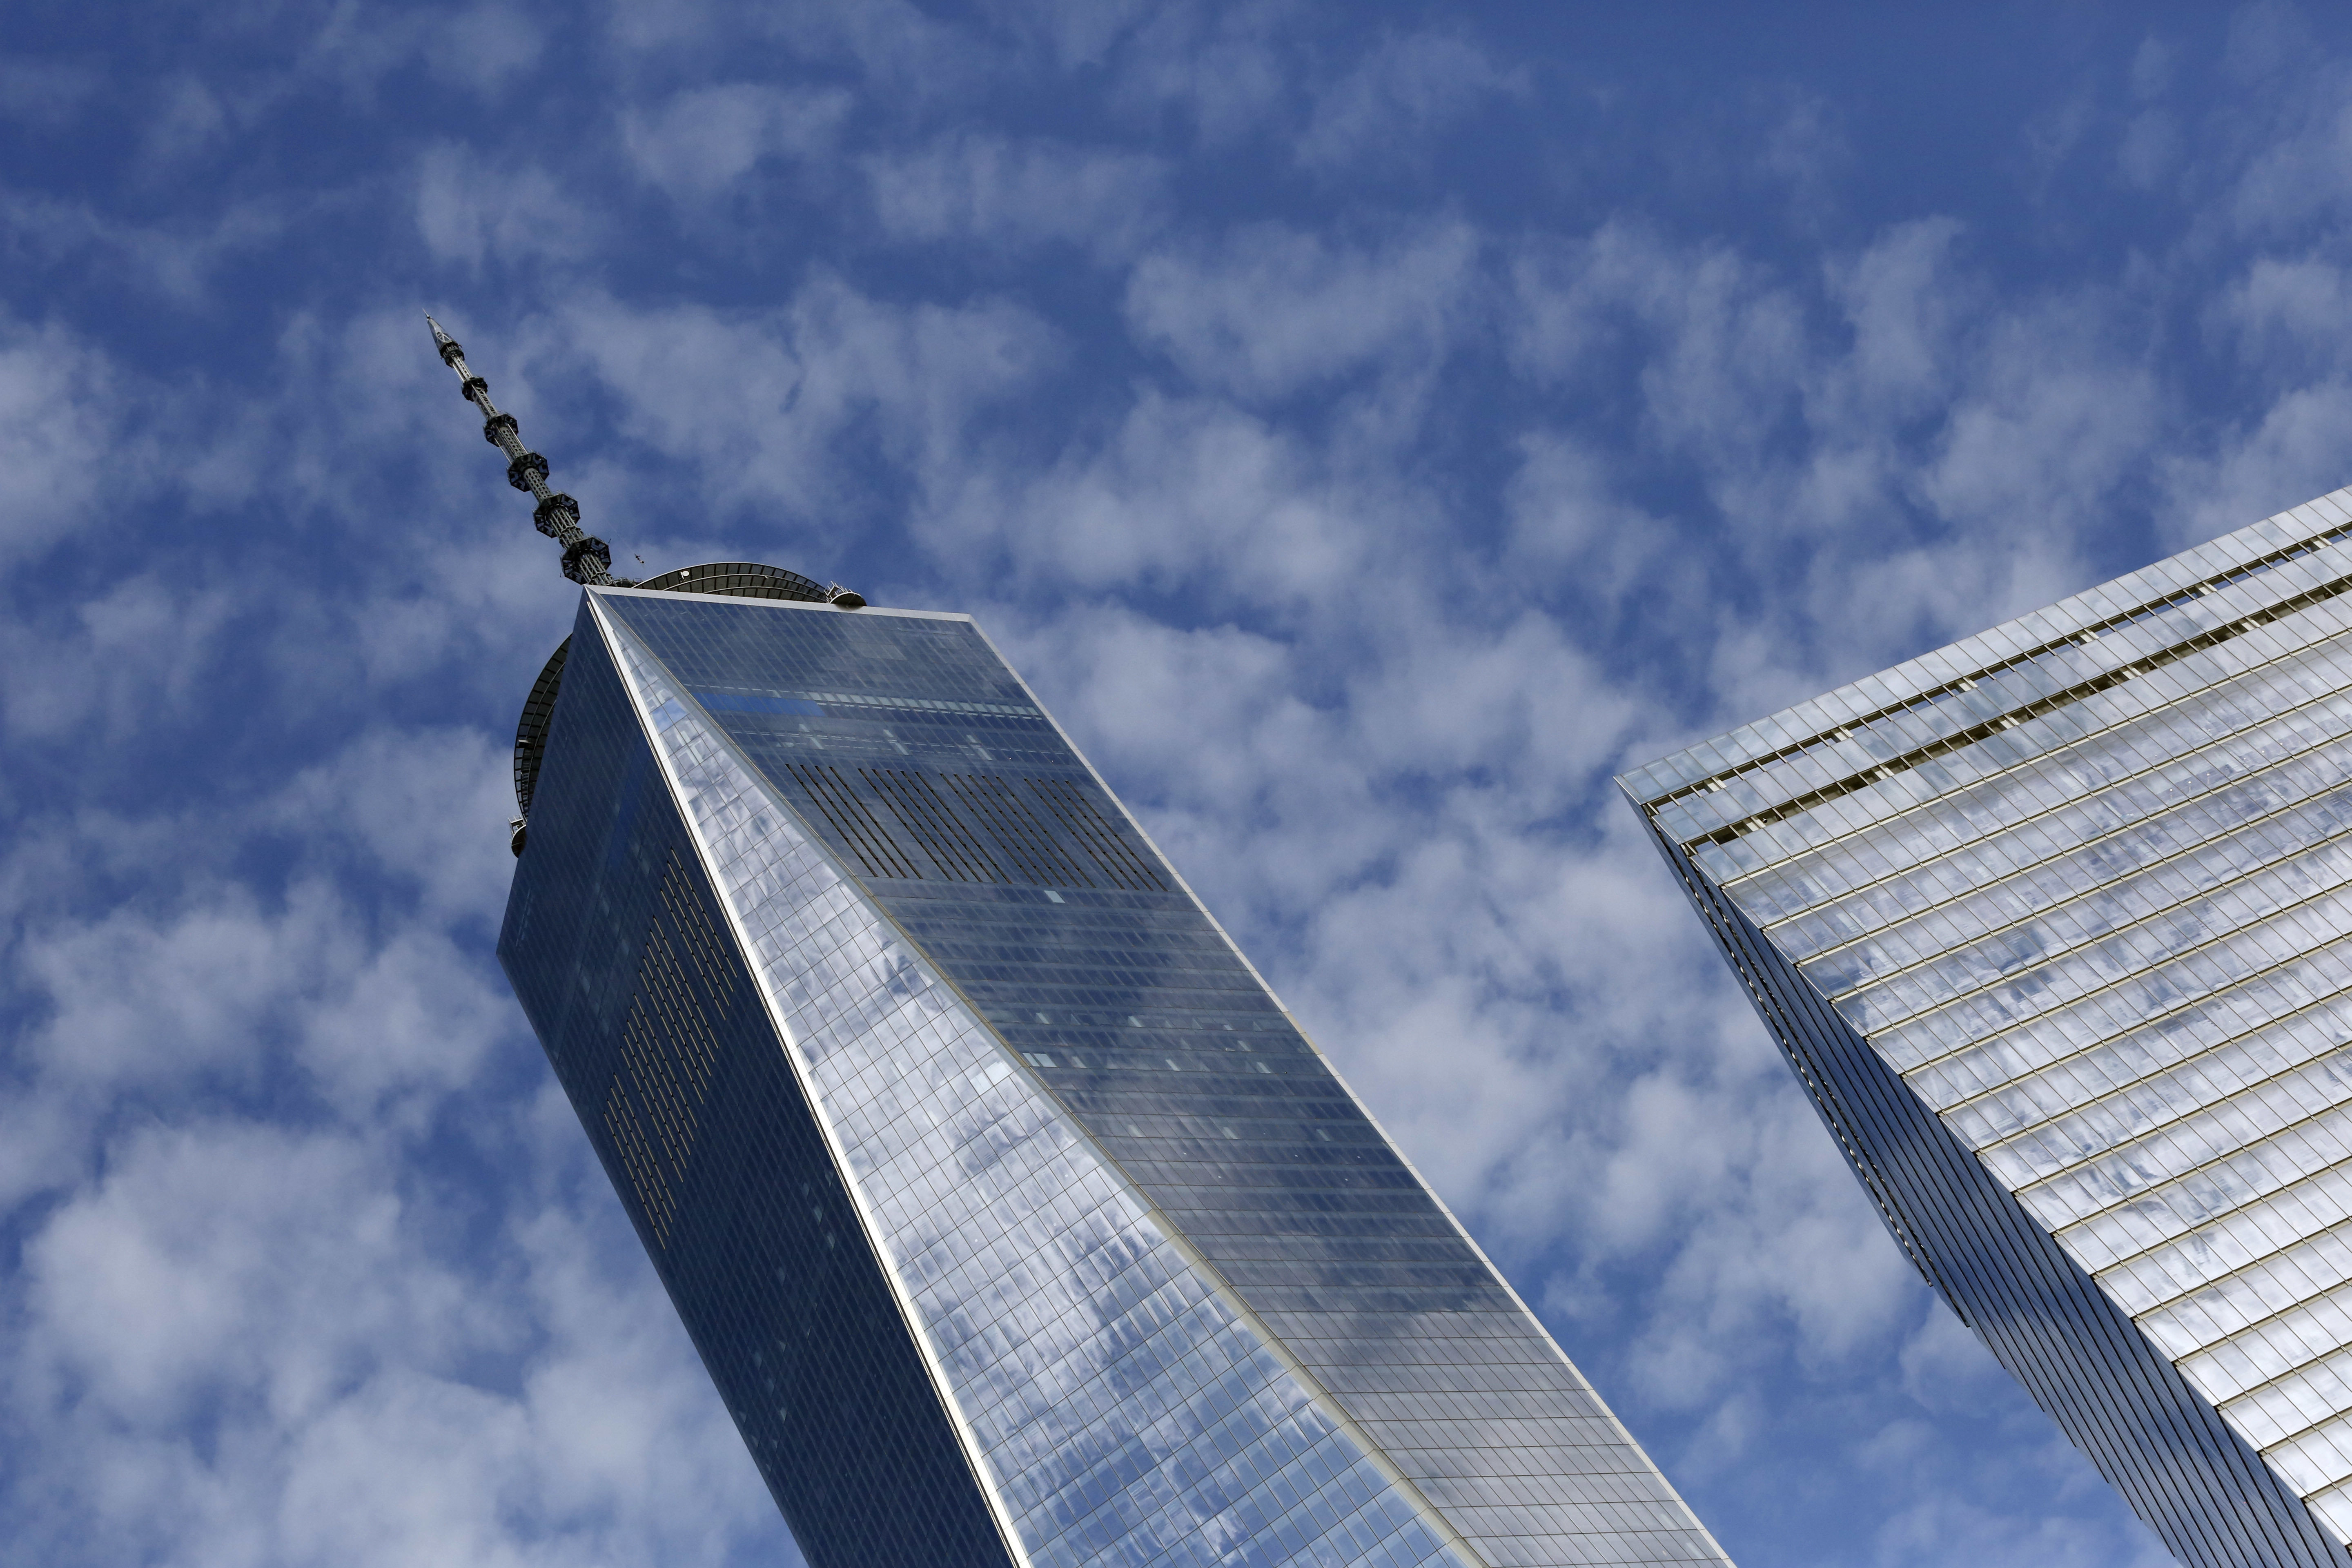 Financial Markets FILE - This Tuesday, Aug. 16, 2016, file photo shows One World Trade Center, left, and 7 World Trade Center, in New York. U.S. stocks slip away from record highs, Thursday, Sept. 14, 2017, as technology and health care companies sink, with prescription drug distributors taking some of the biggest losses. (AP Photo/Mark Lennihan, File)